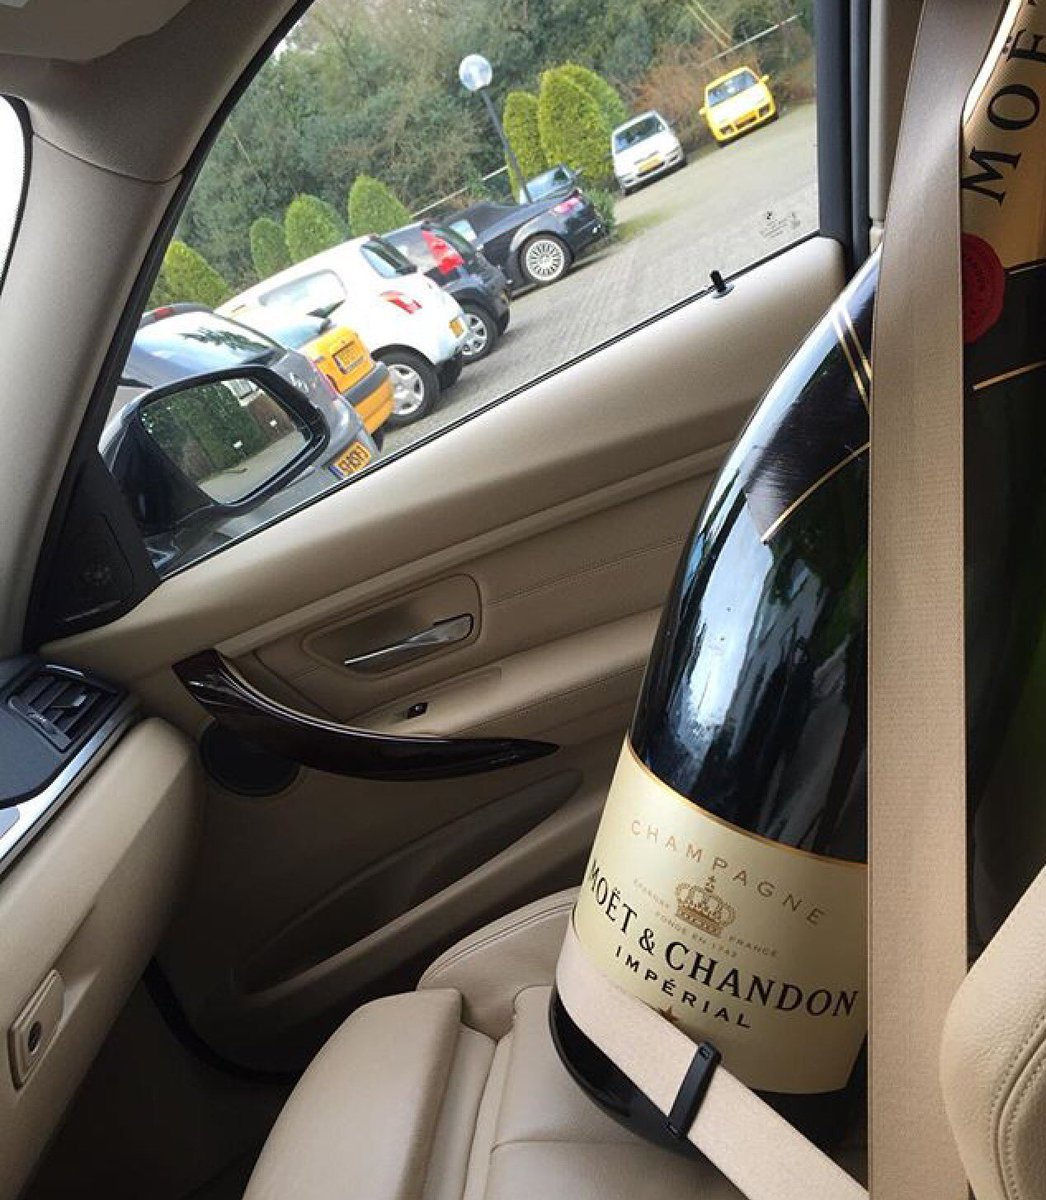 Rules for passengers: sit down, do not touch radio, belt up  . . .  @EnnoGrimbergen #wine #champagne @winewankers @JMiquelWine @MacCocktail <br>http://pic.twitter.com/pi3gb4fX2o